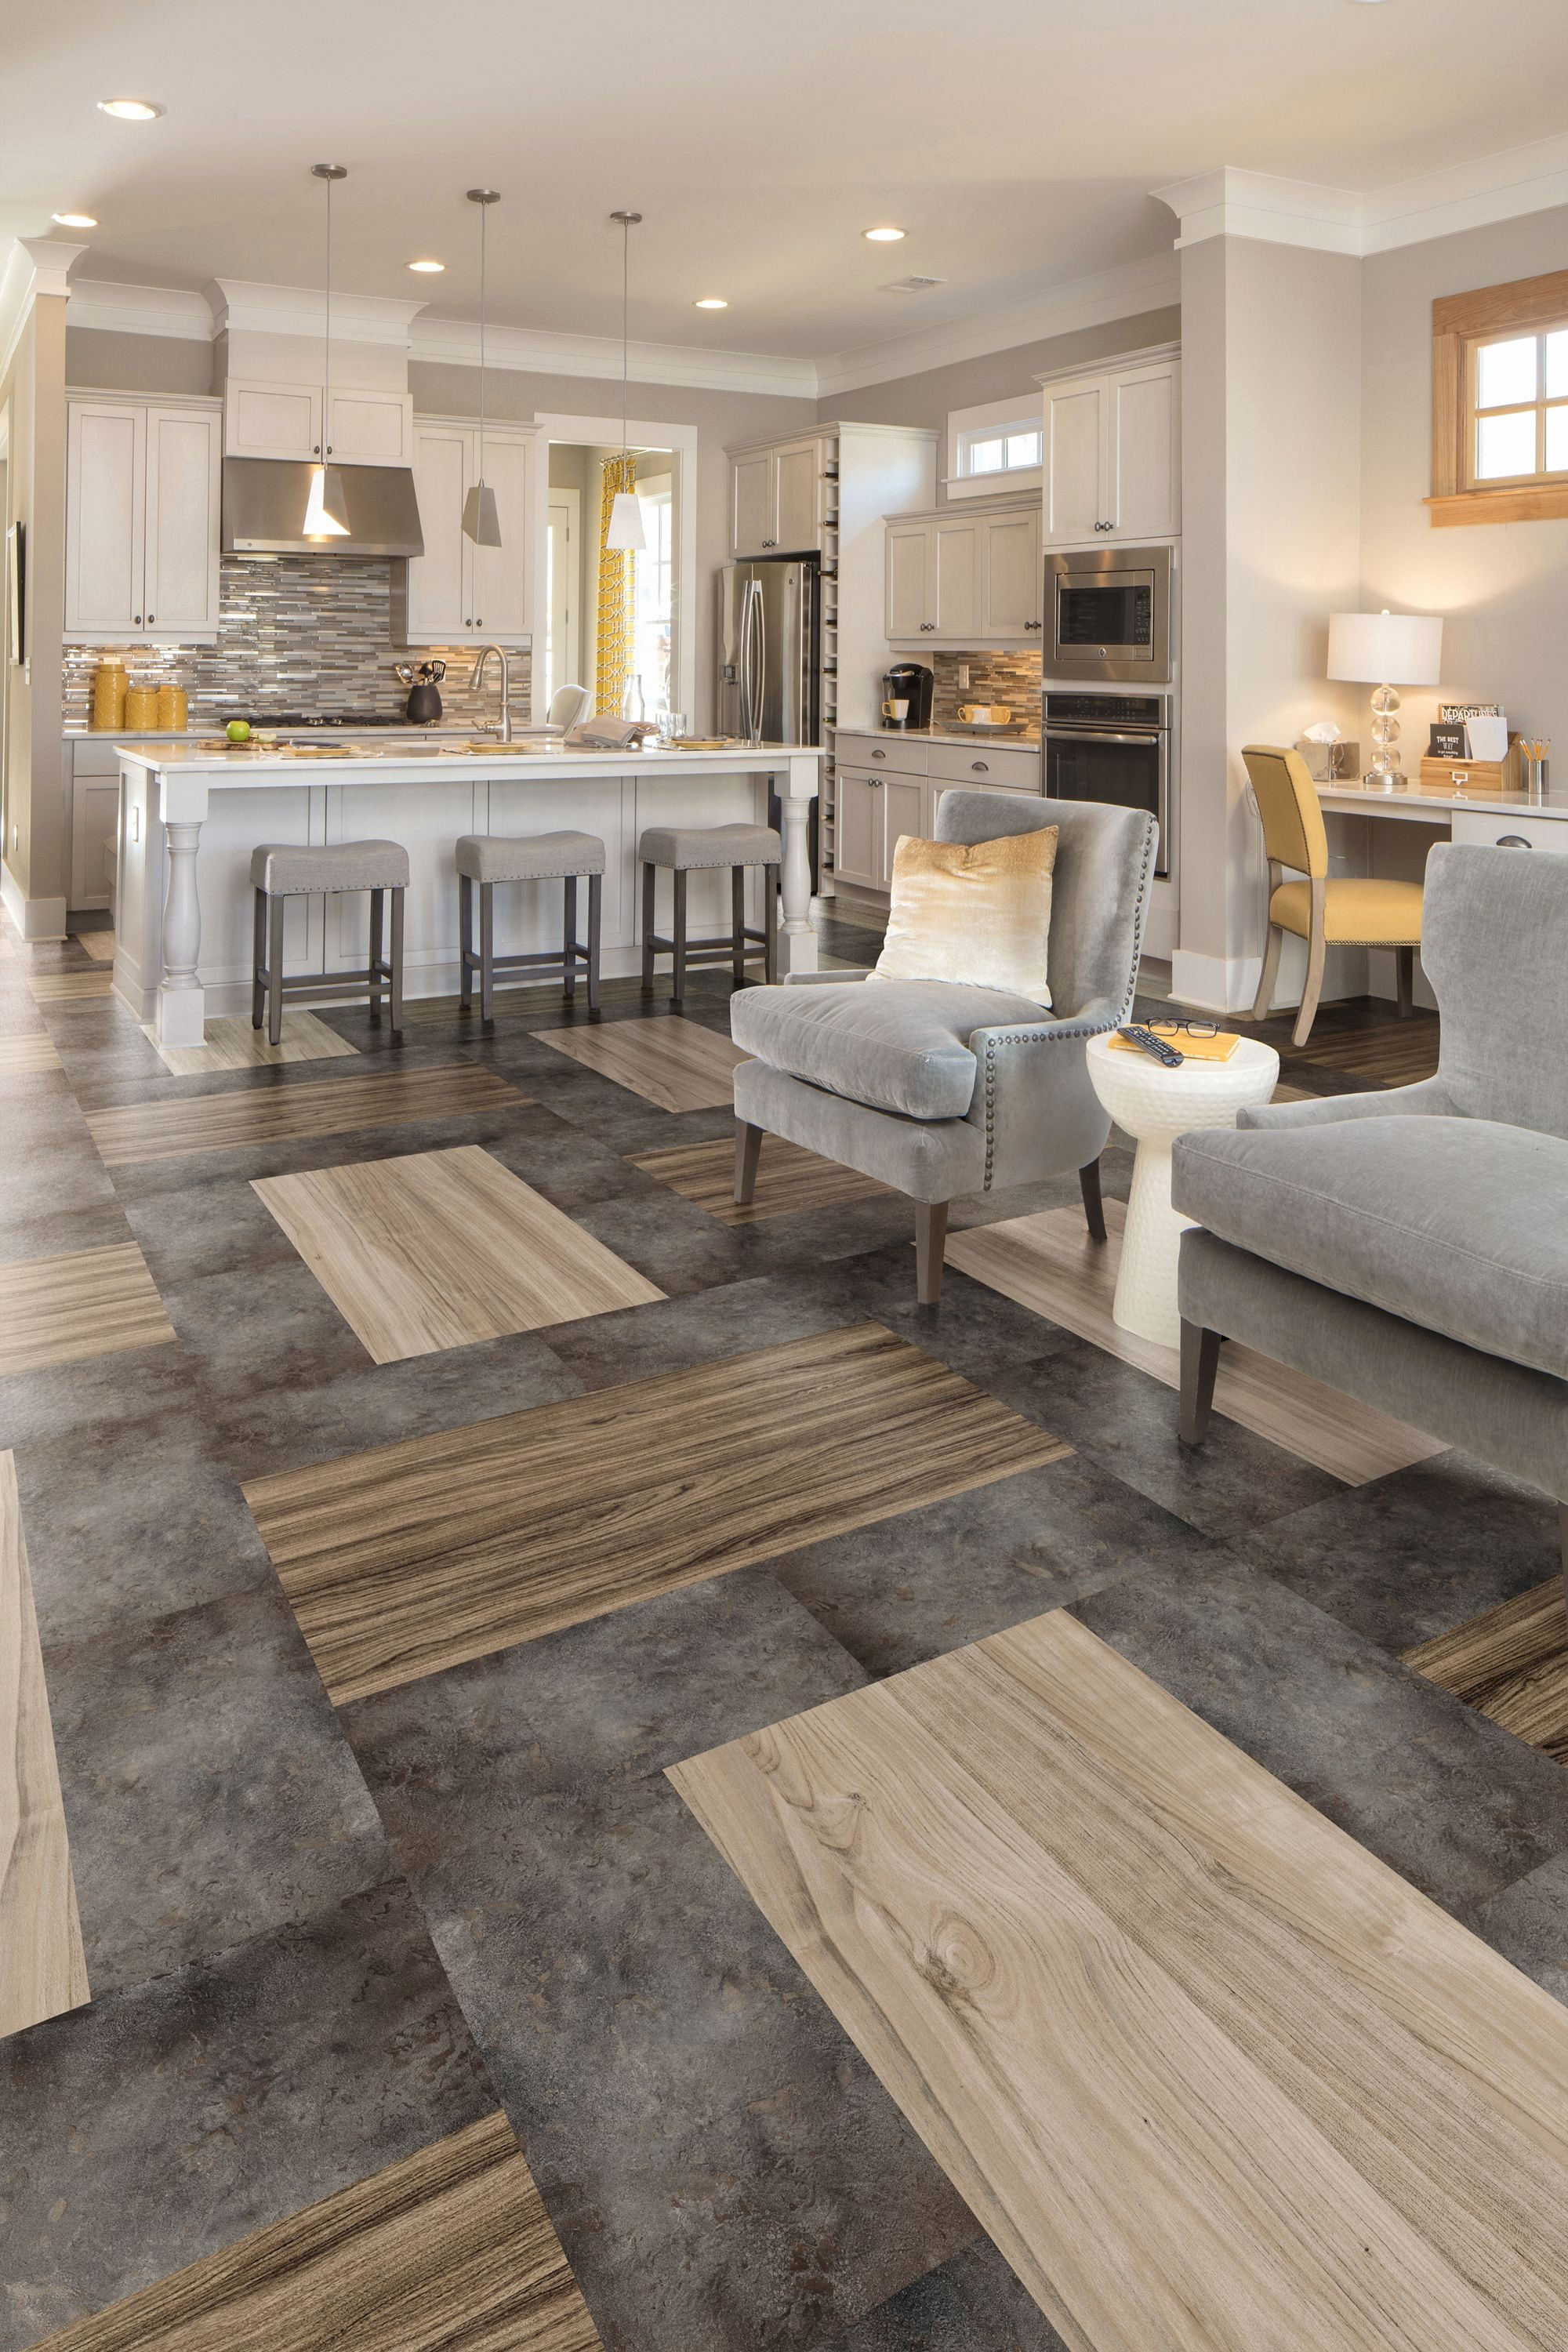 What Flooring Can You Put Over Ceramic Tiles